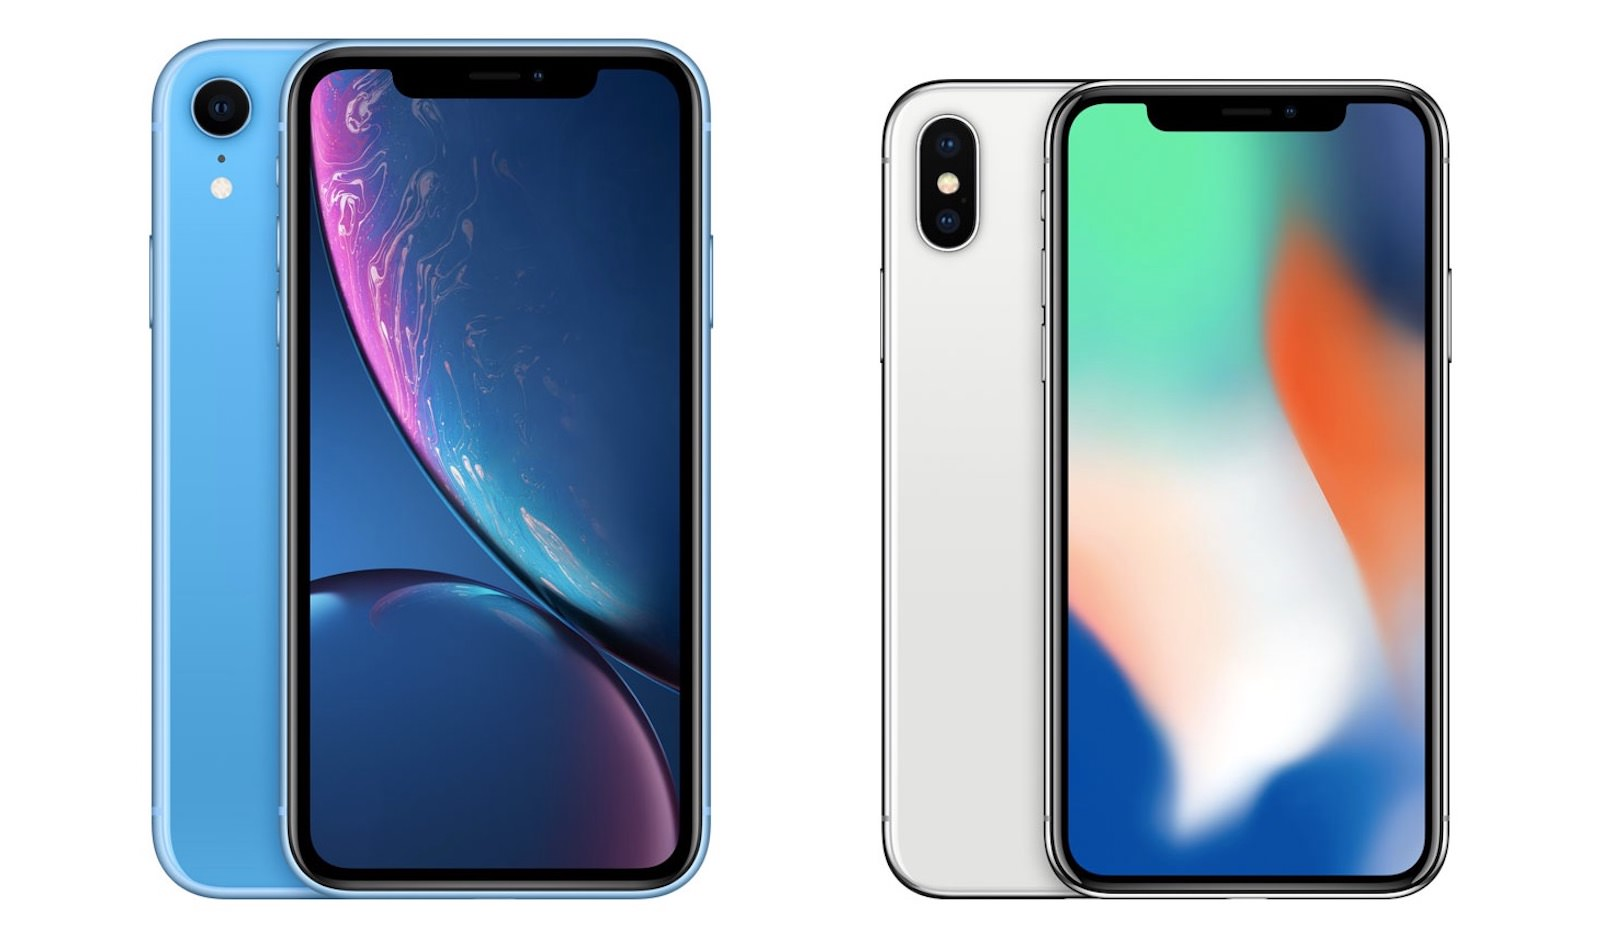 Iphone xr x comparison